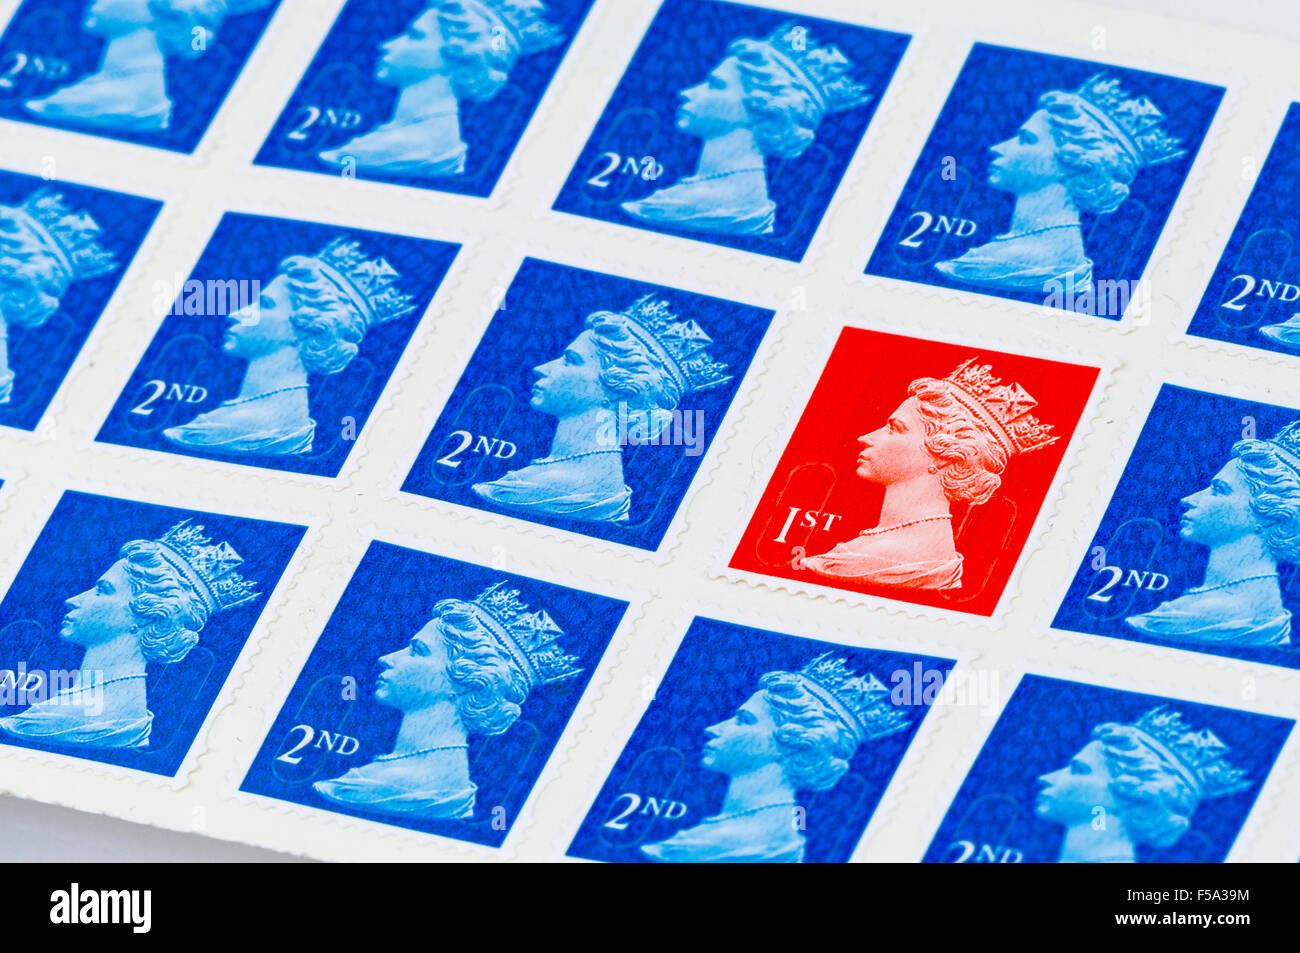 A first 1st class Royal Mail stamp among second 2nd class stamps - Stock Image